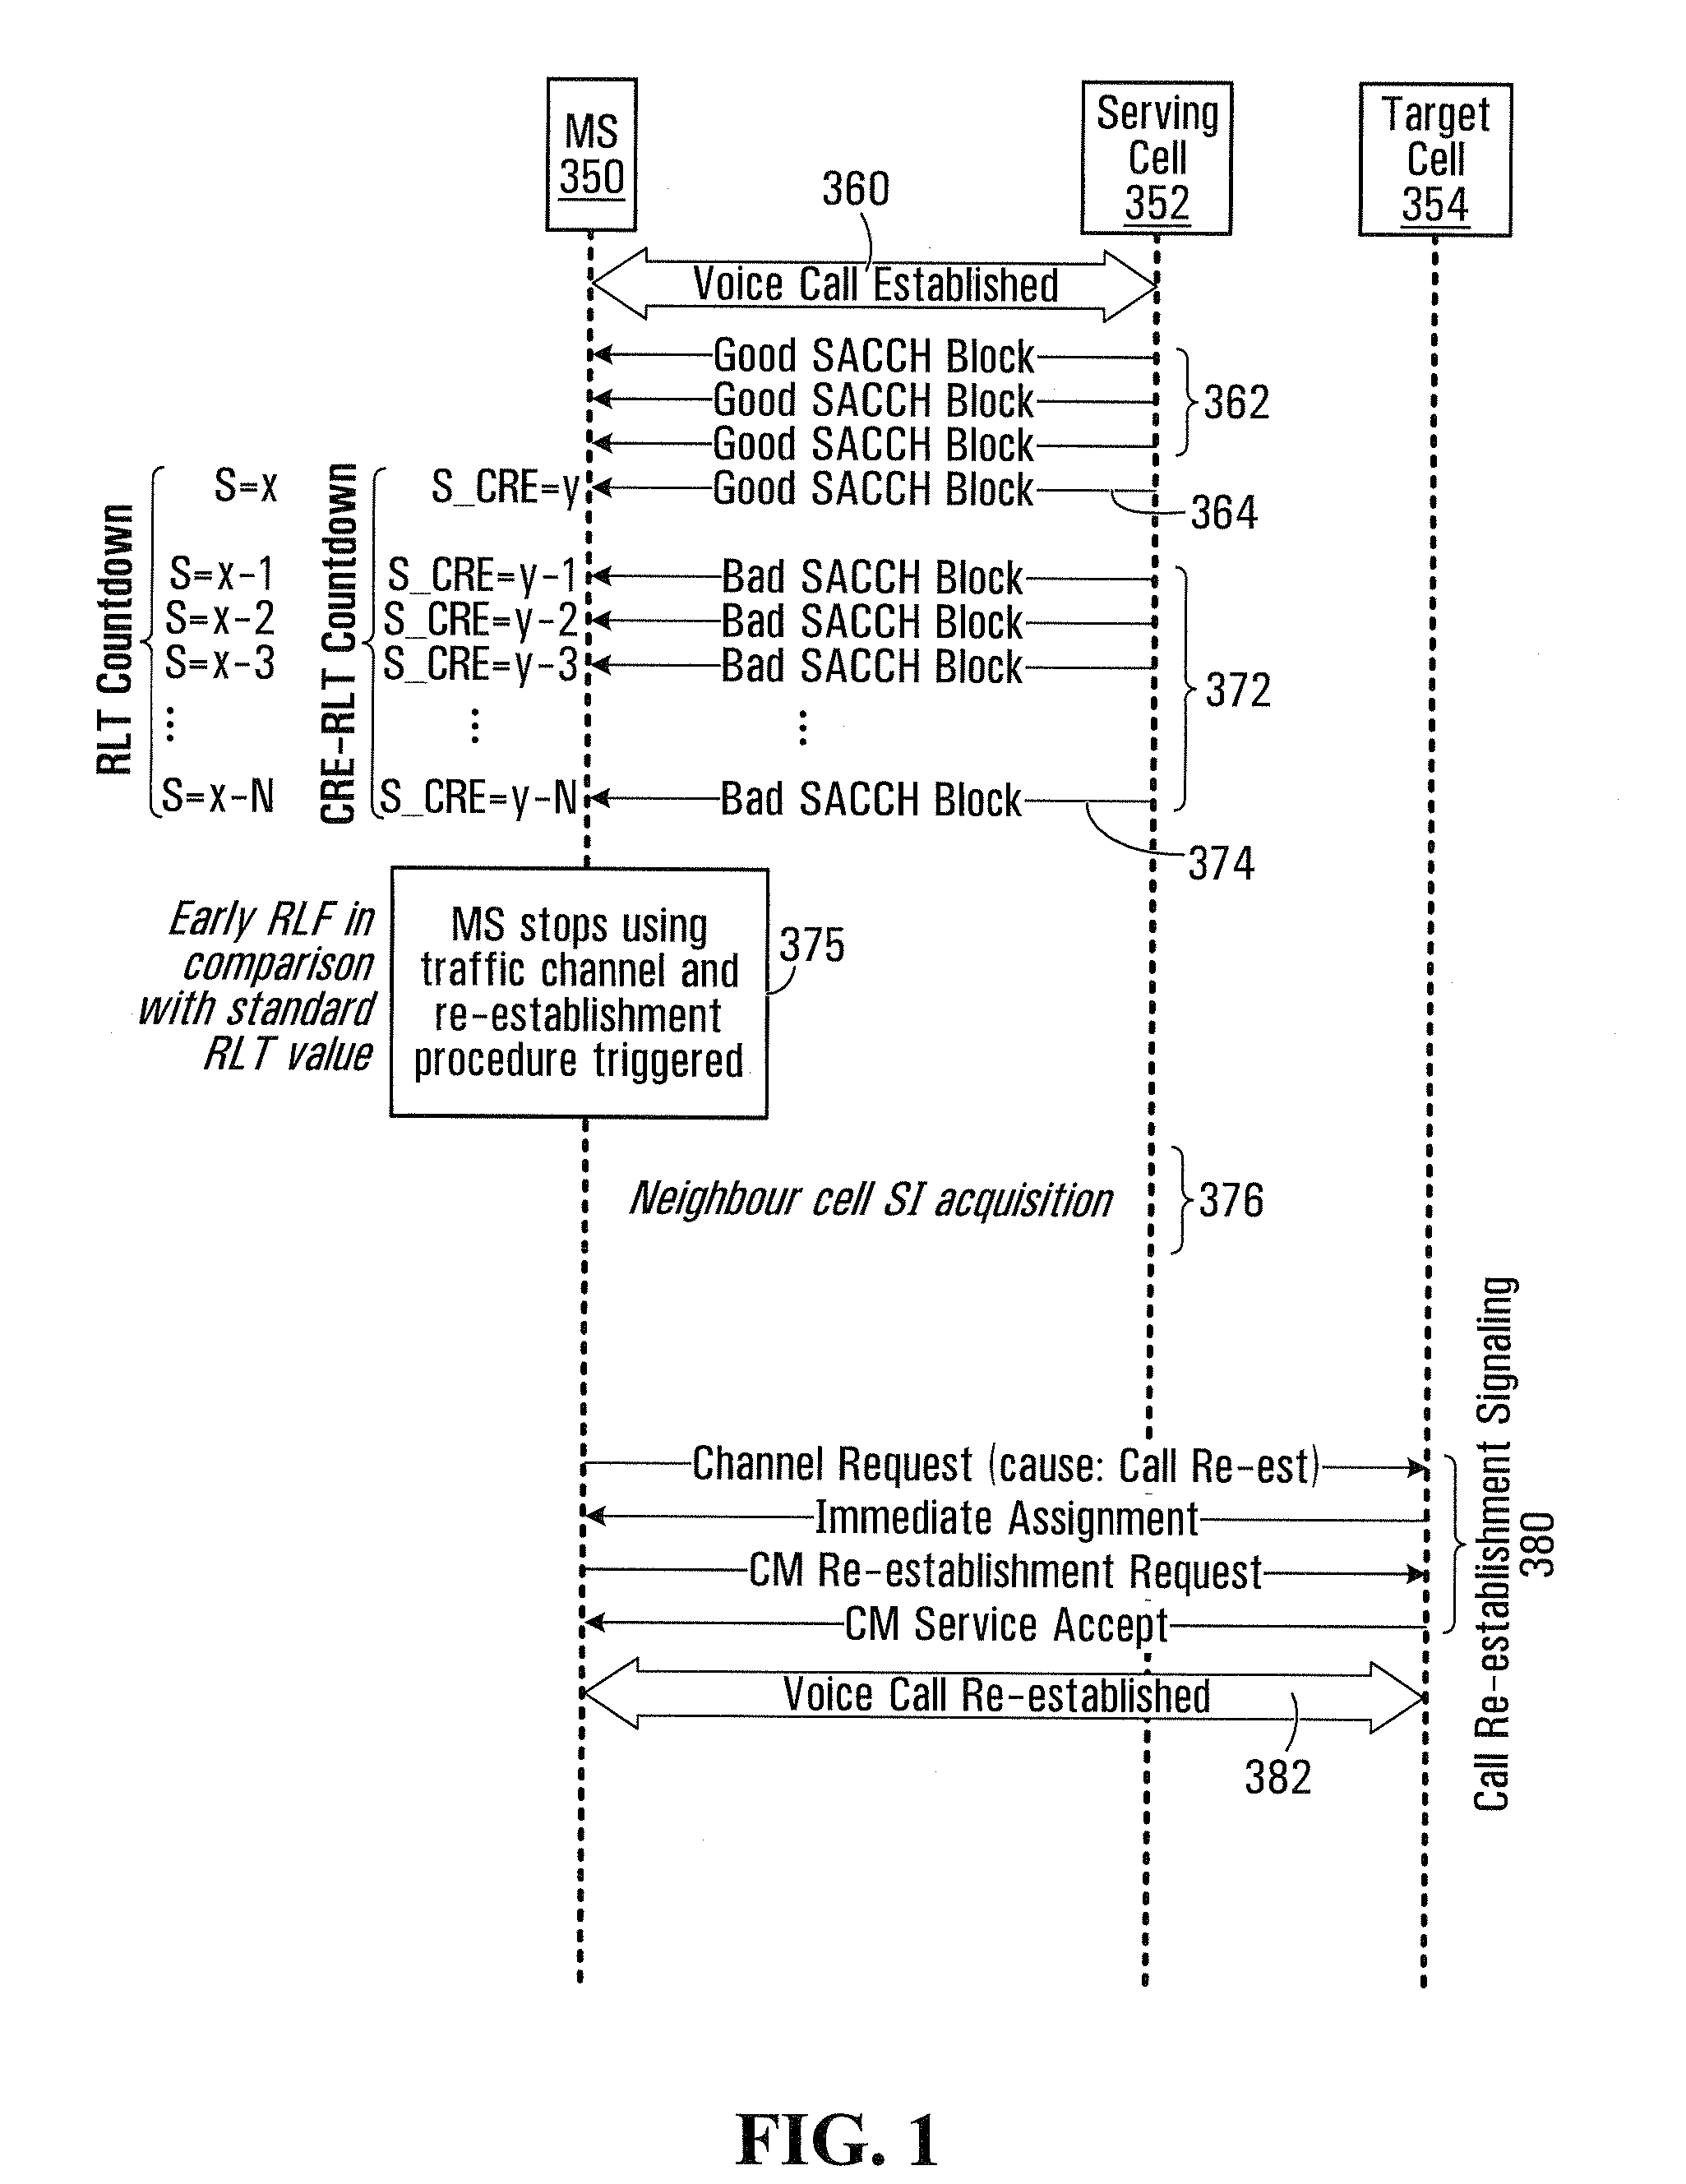 US20110053586A1 20110303 D00001?resize\=840%2C1088 valcom v 1030c wiring diagram on valcom images free download valcom paging horn wiring diagram at cos-gaming.co